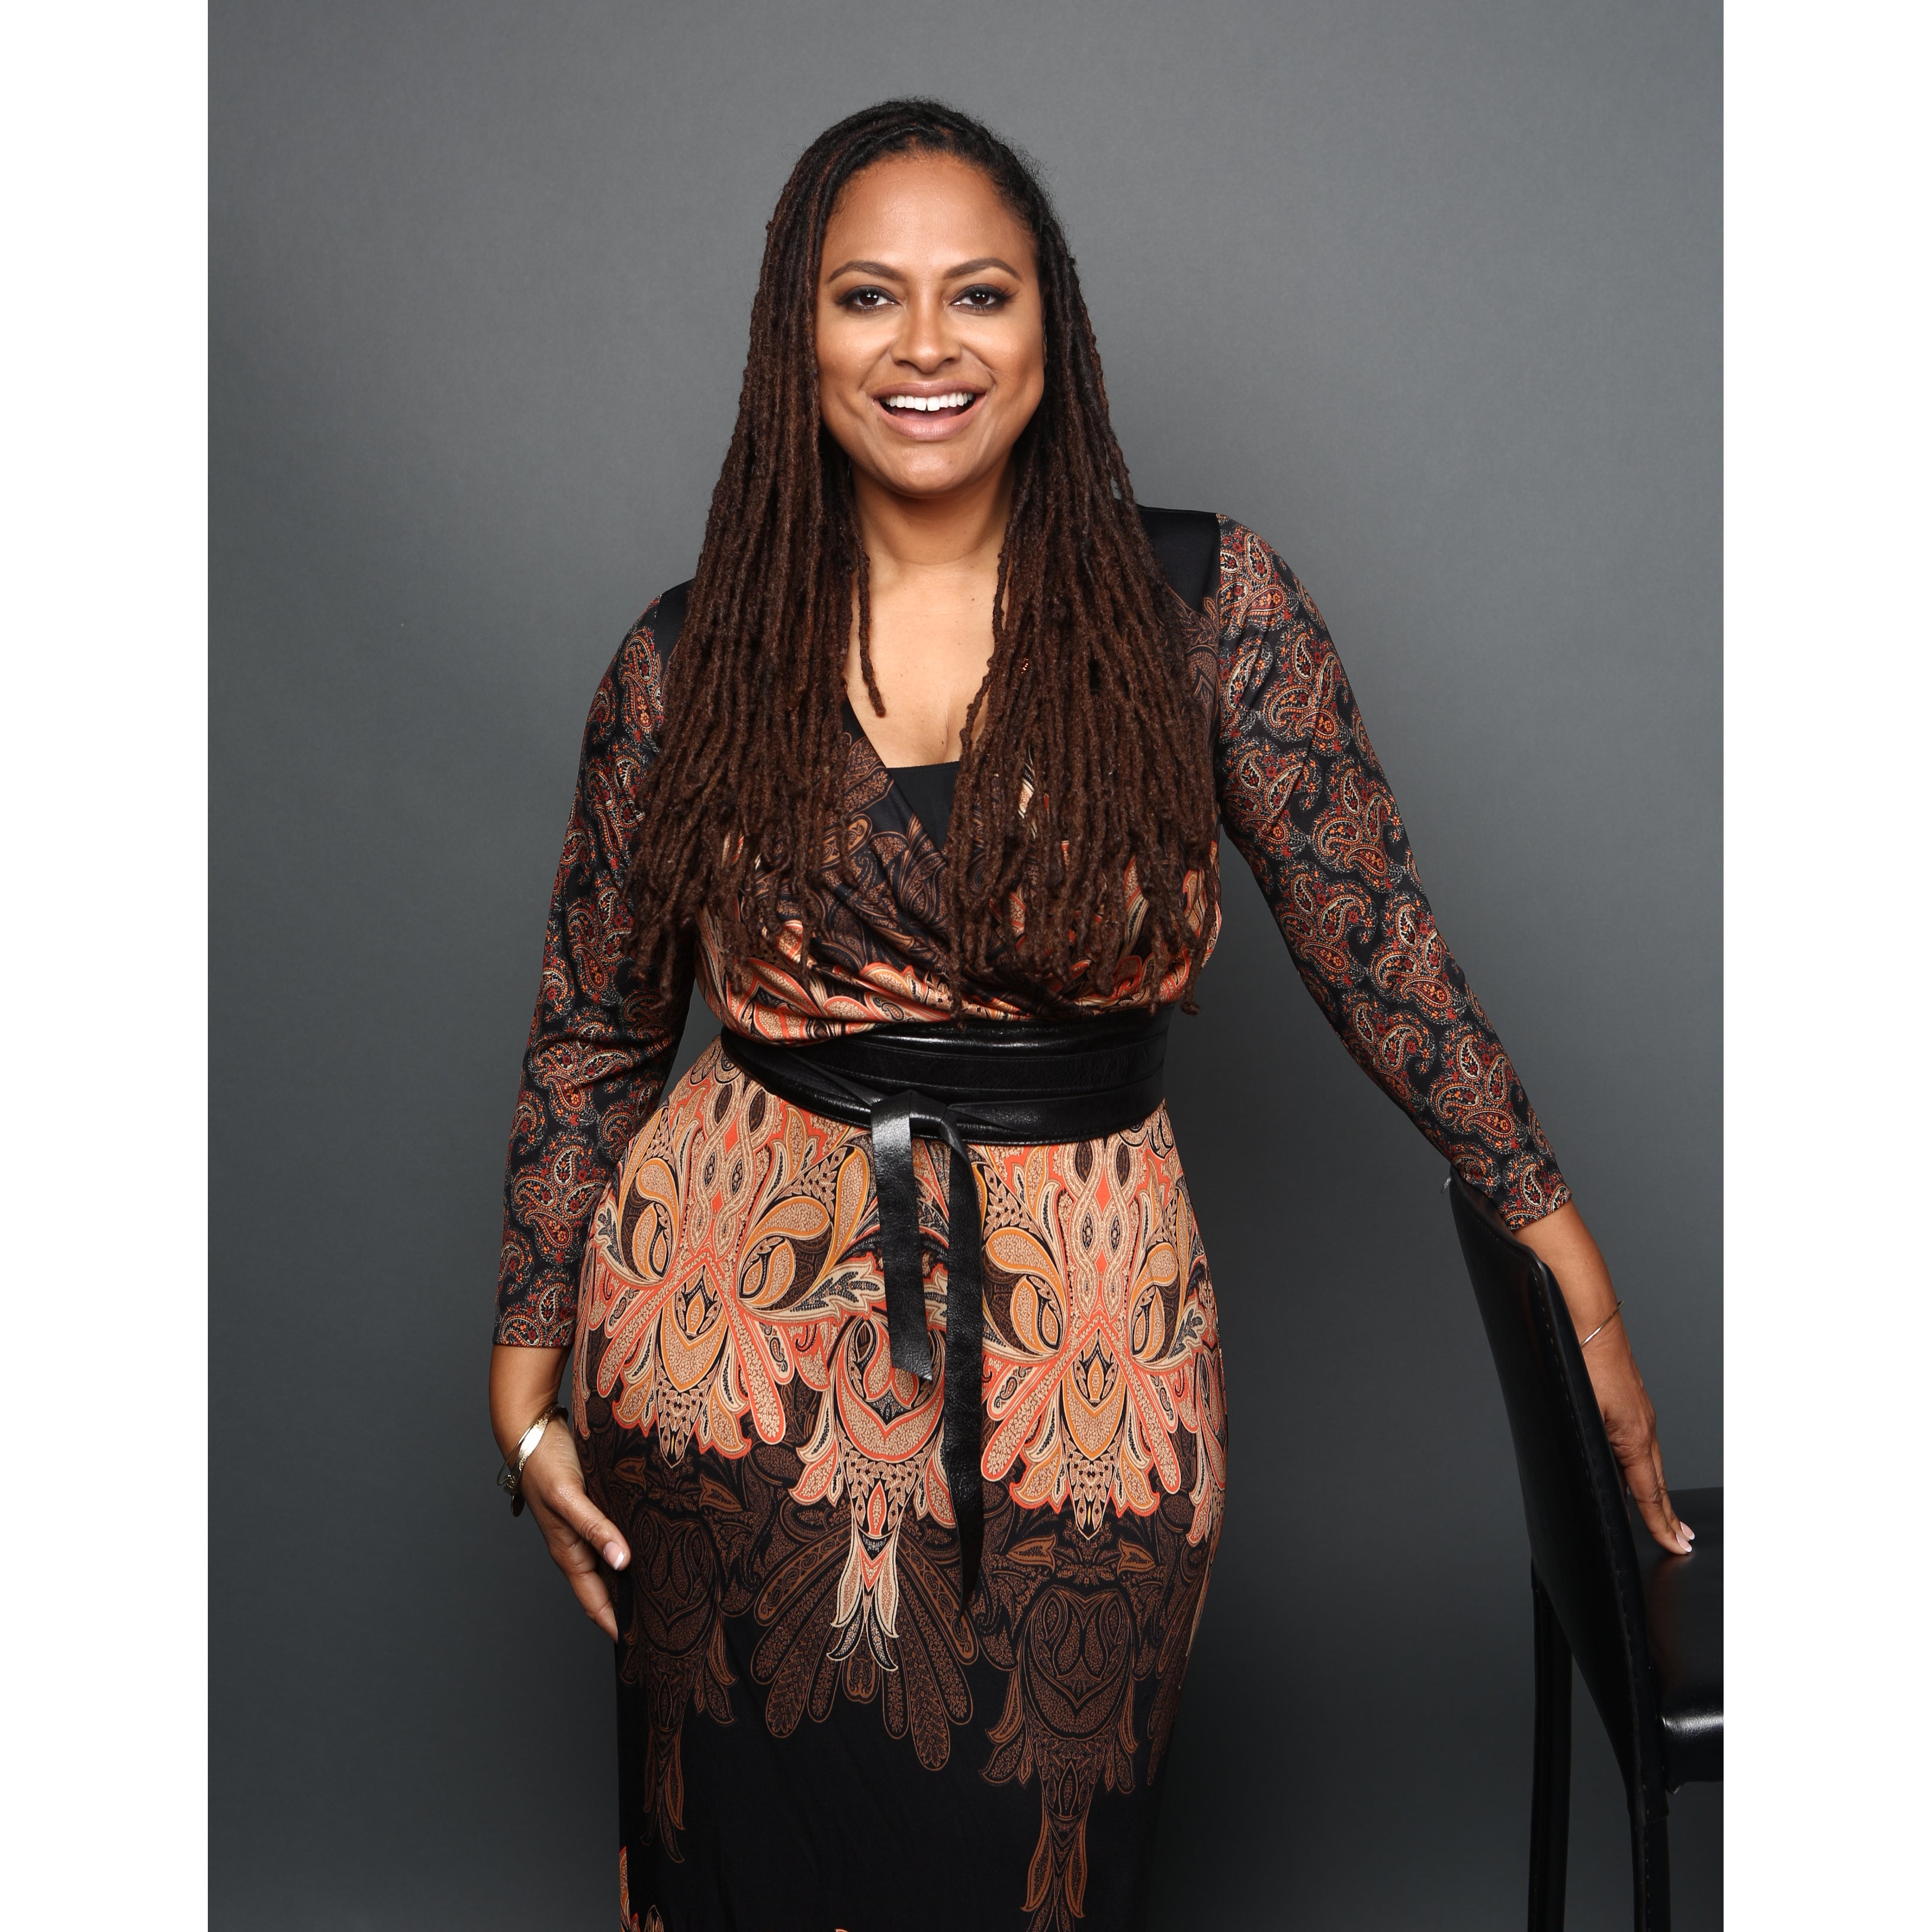 Ava Duvernay On How To 'Wear Your Crown Everyday' And Follow Your Dreams